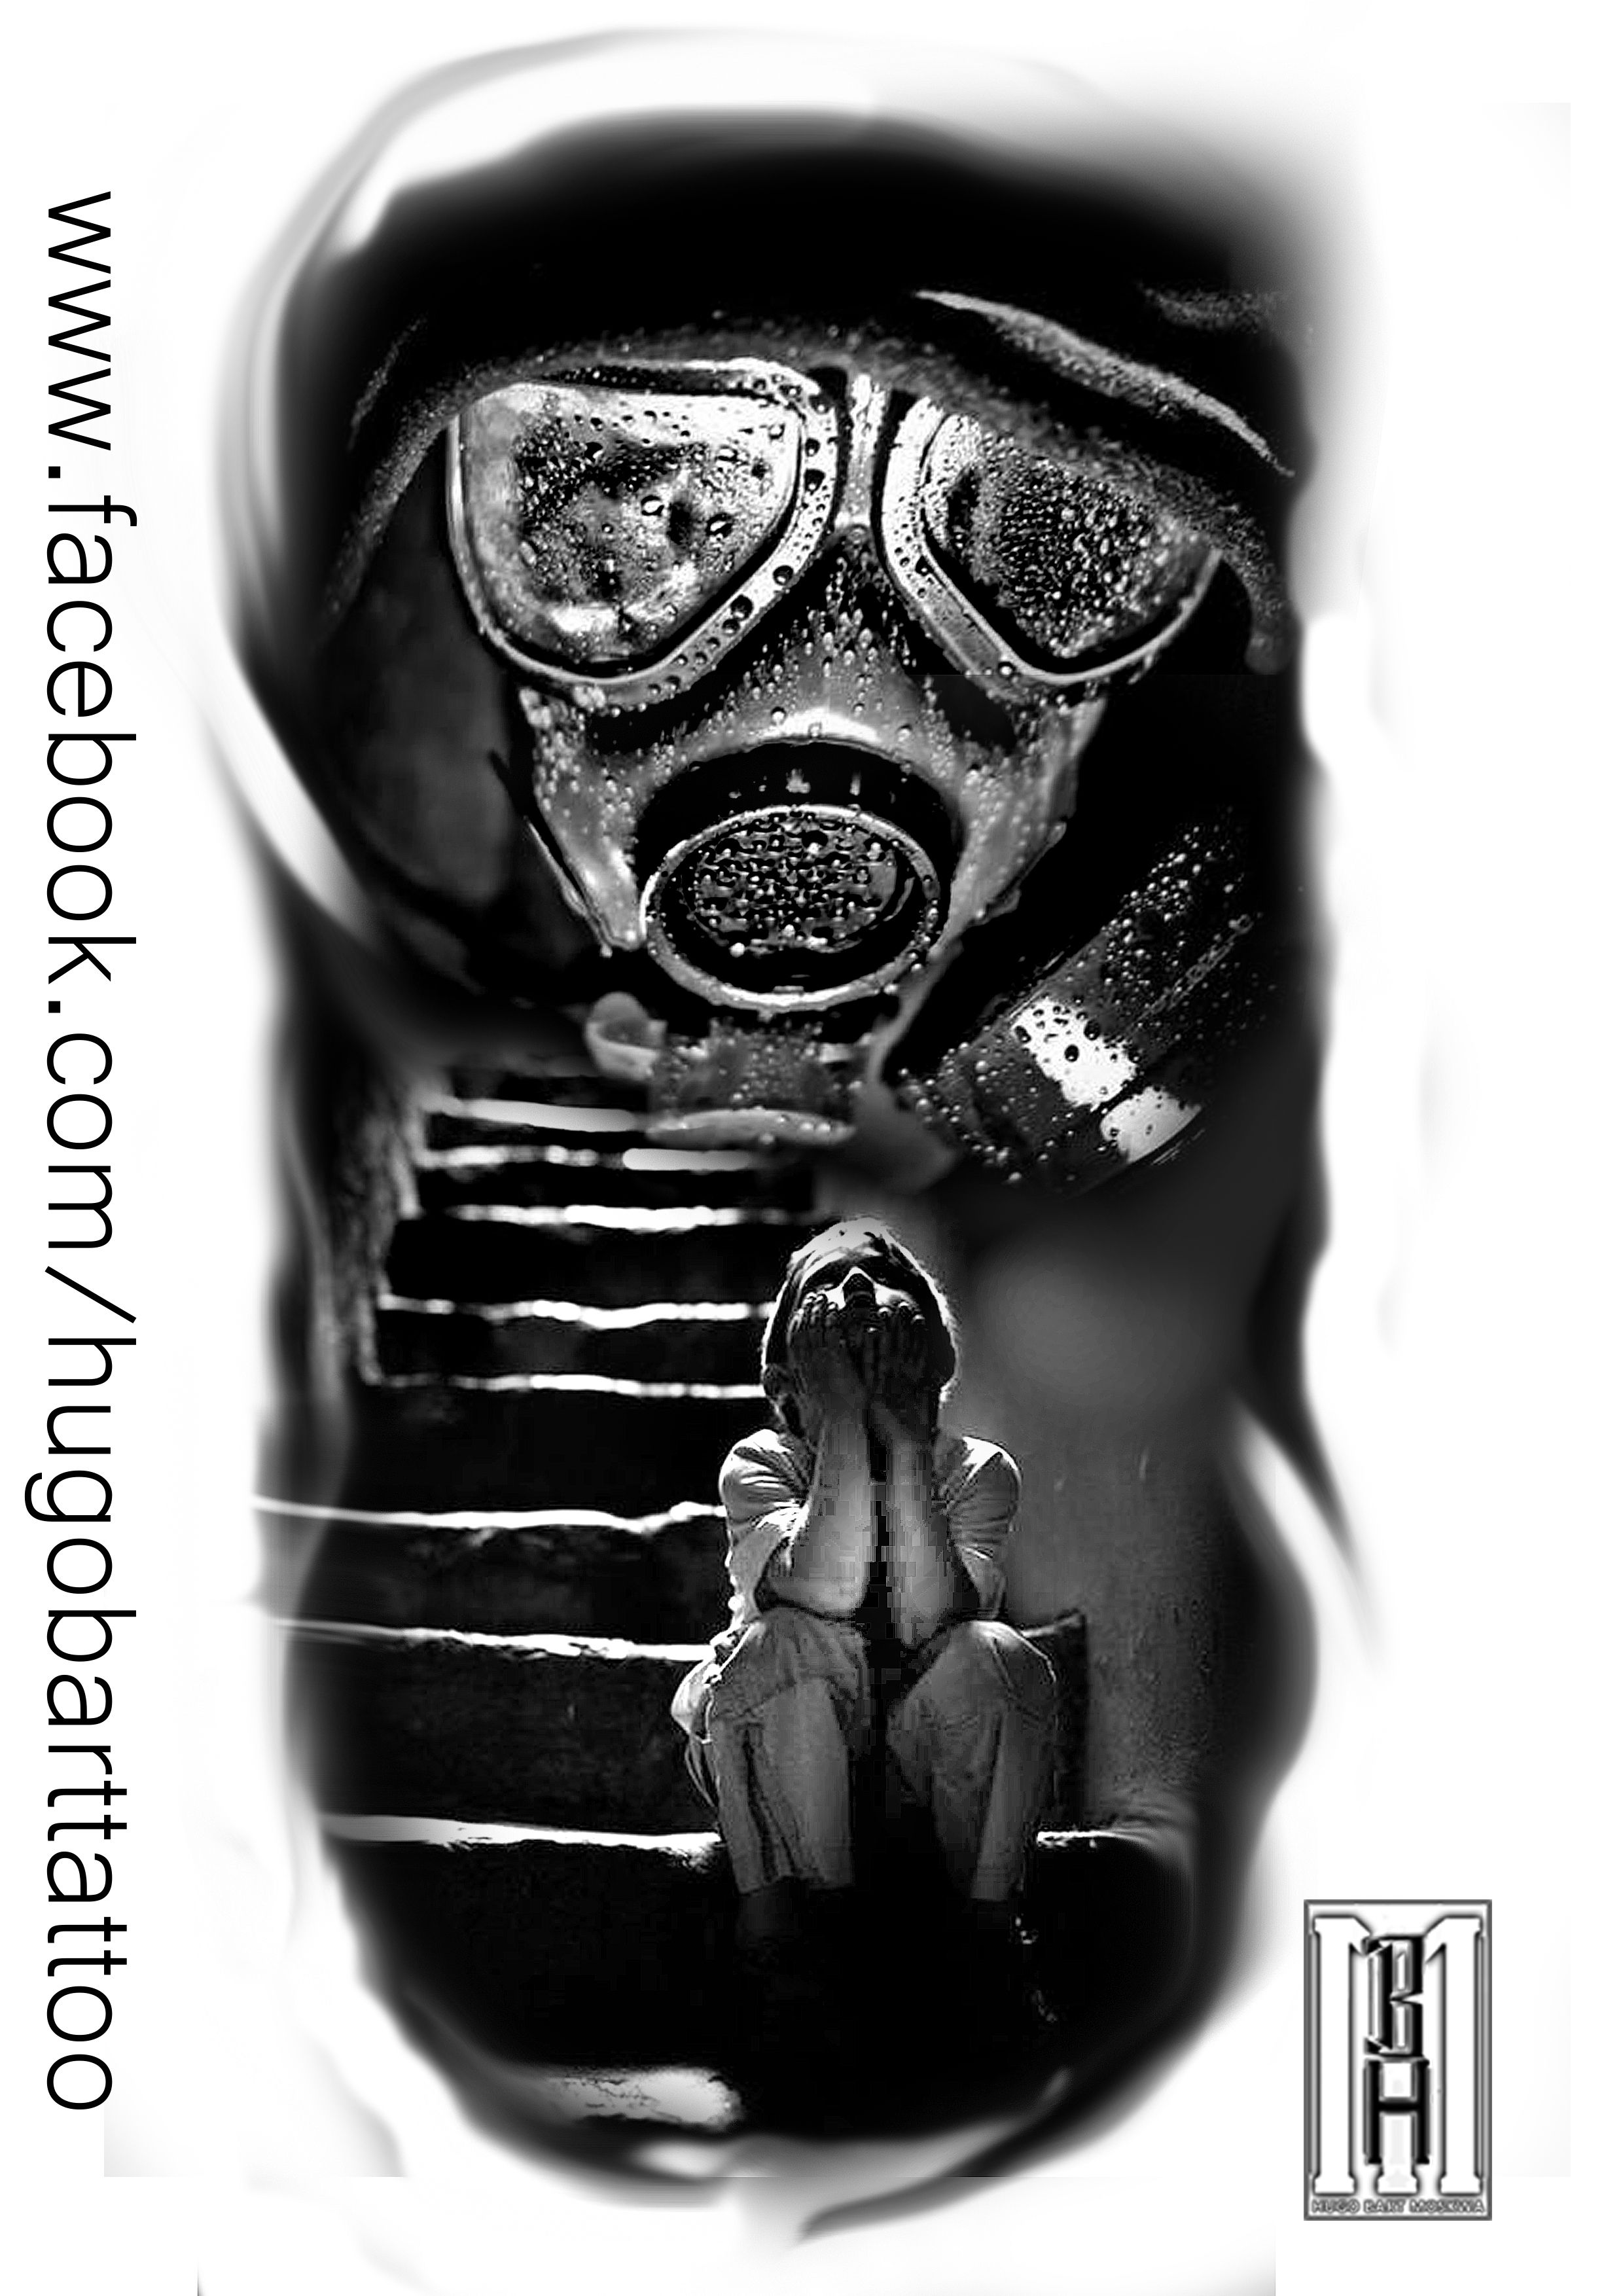 Mask Gasmask Scarry Boy Face Stairs Zombie Creepy Digital Black And